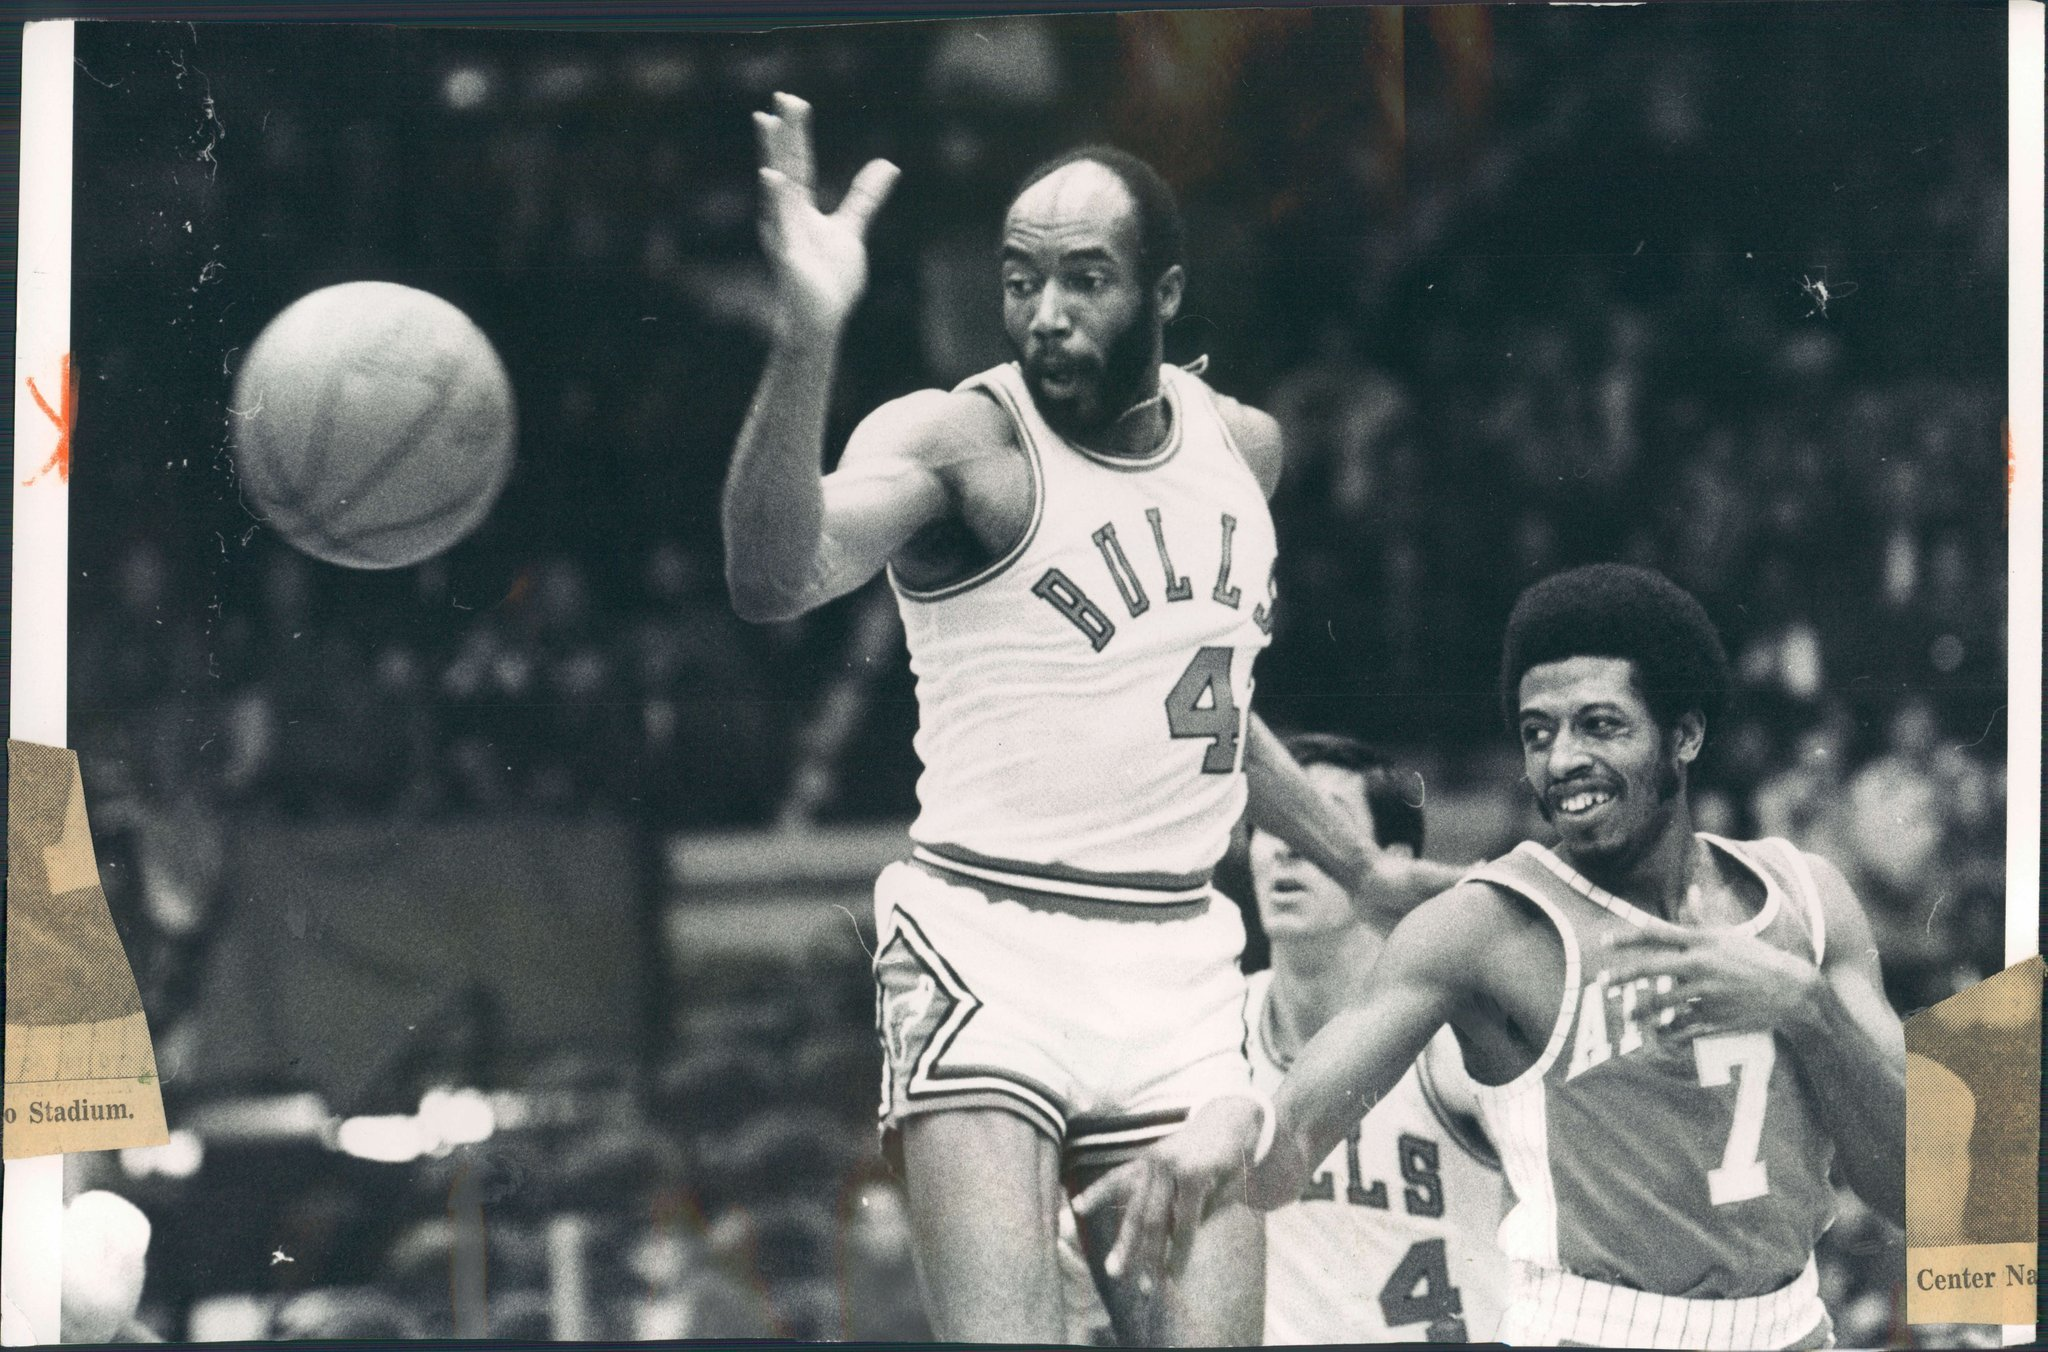 NBA great Nate Thurmond Hall of Fame center and former Bull s